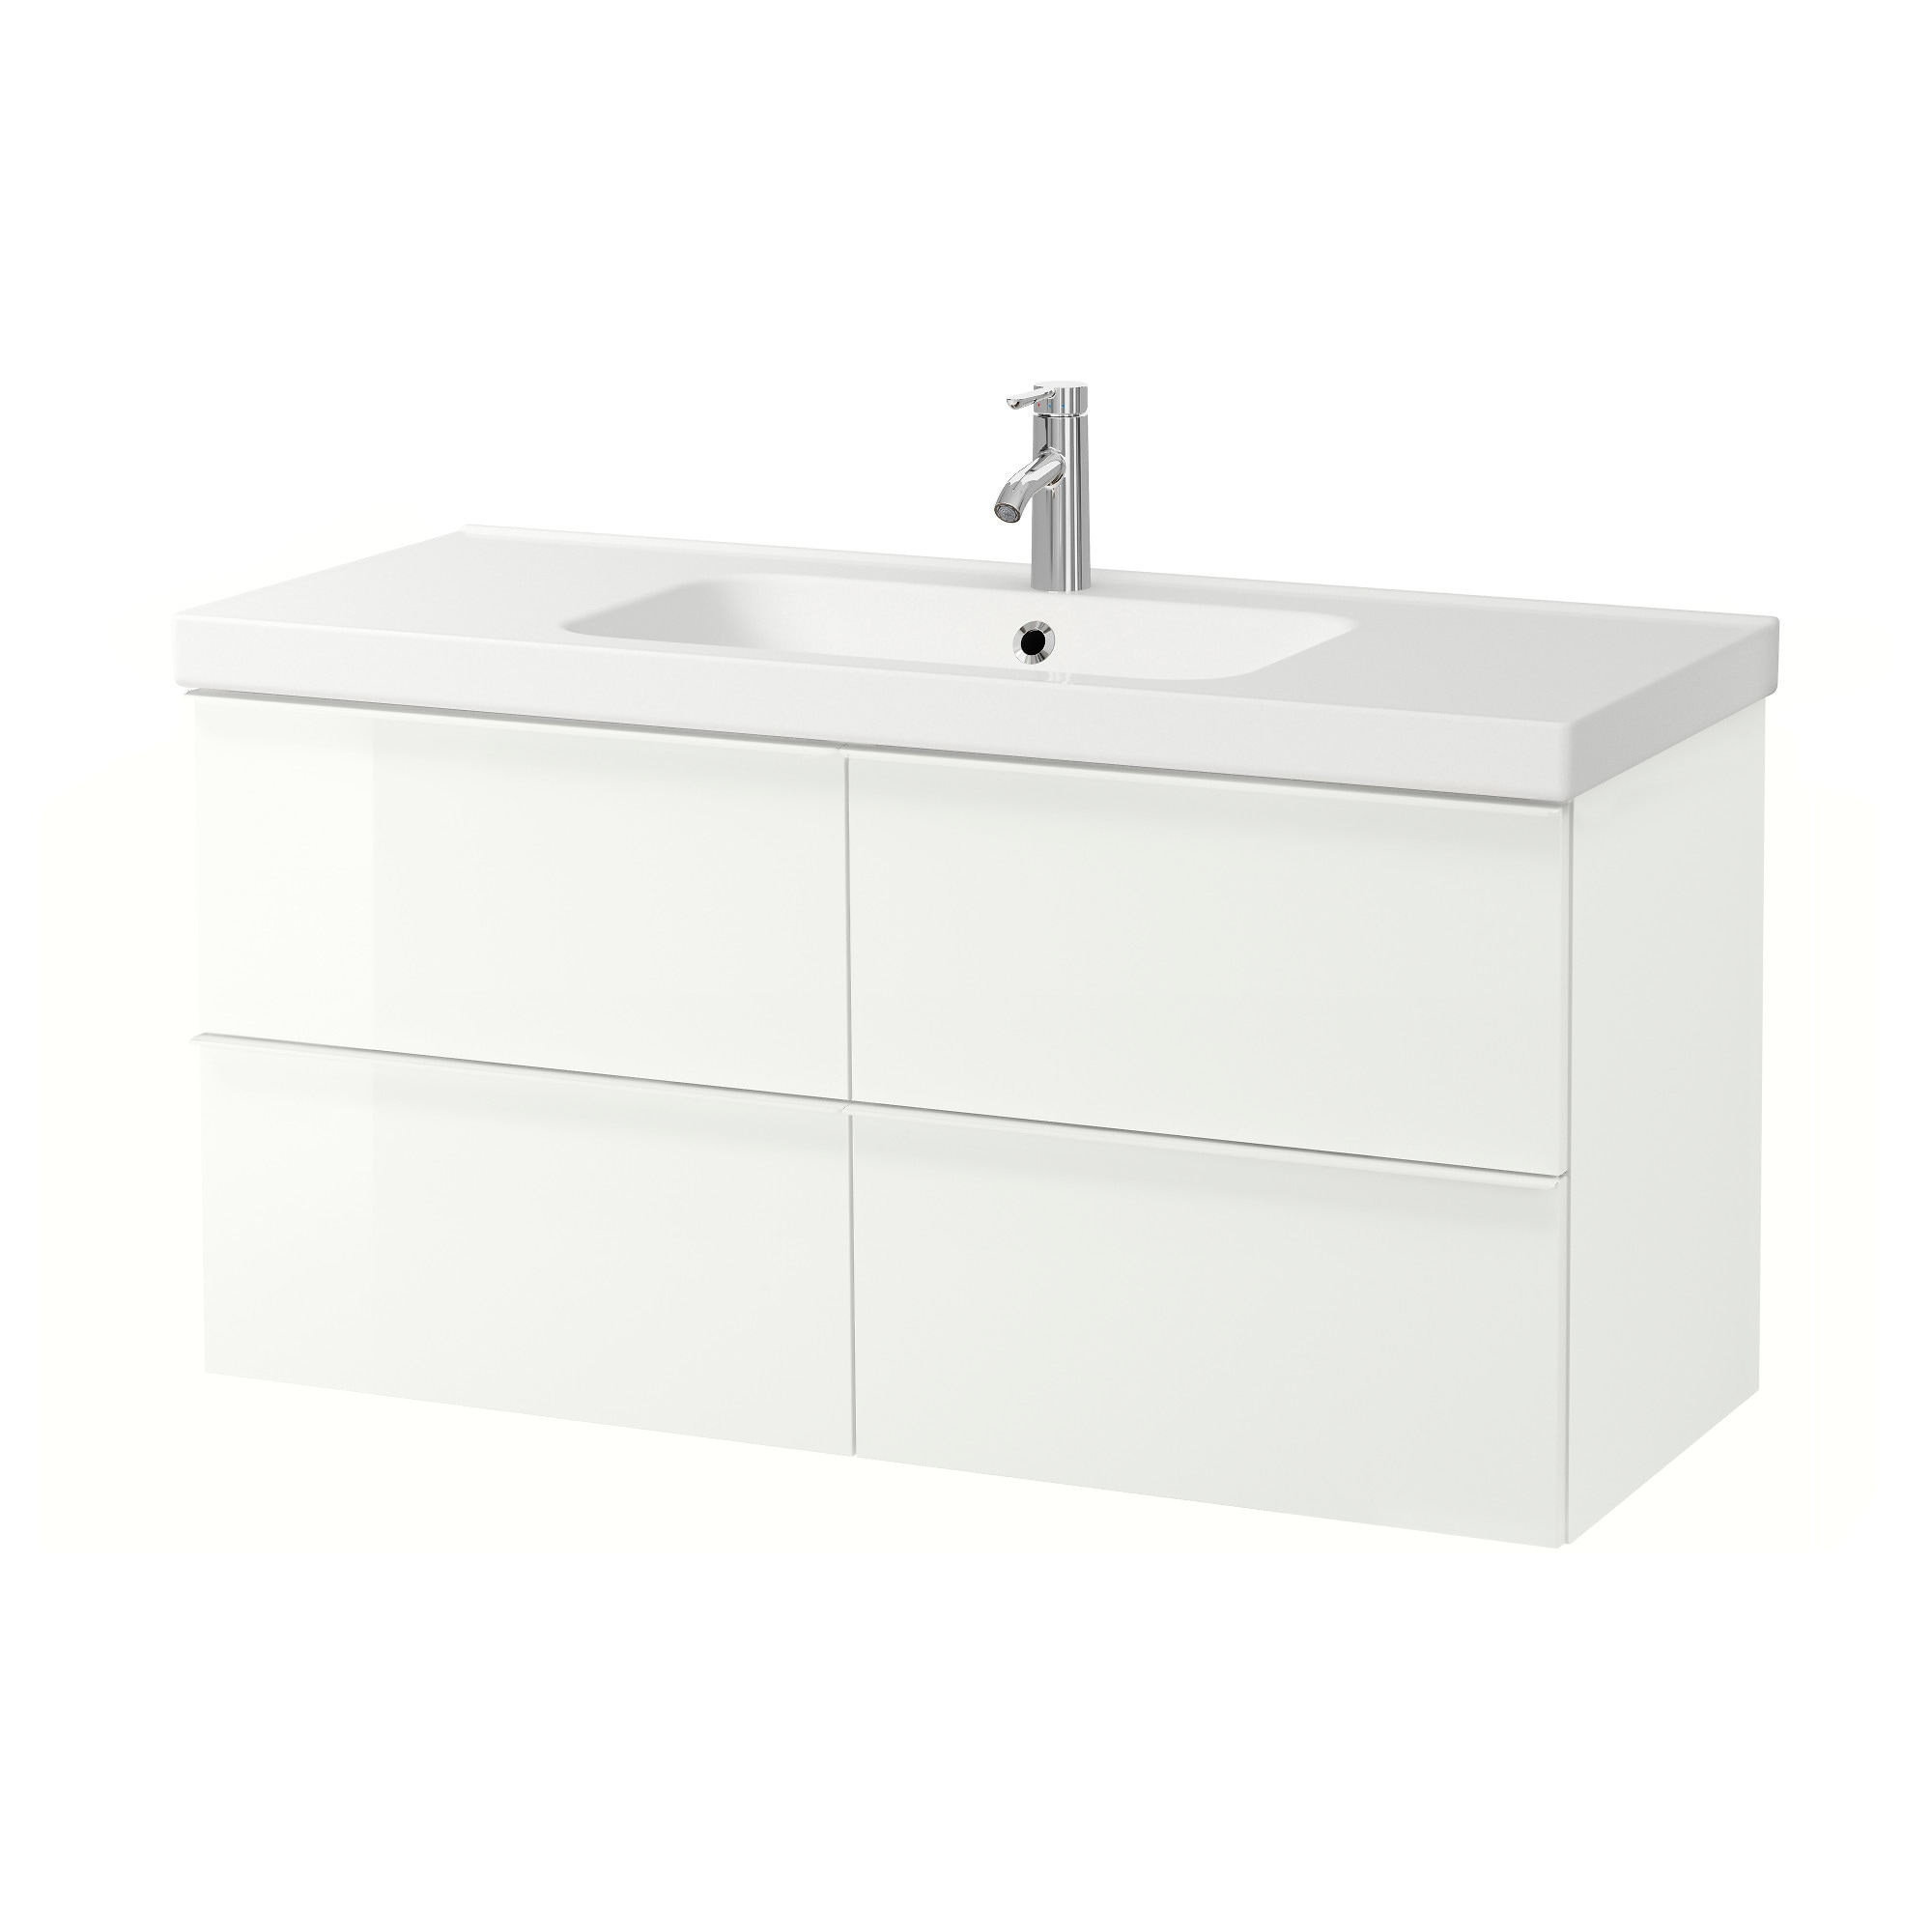 Bathroom Furniture & Fixtures - IKEA